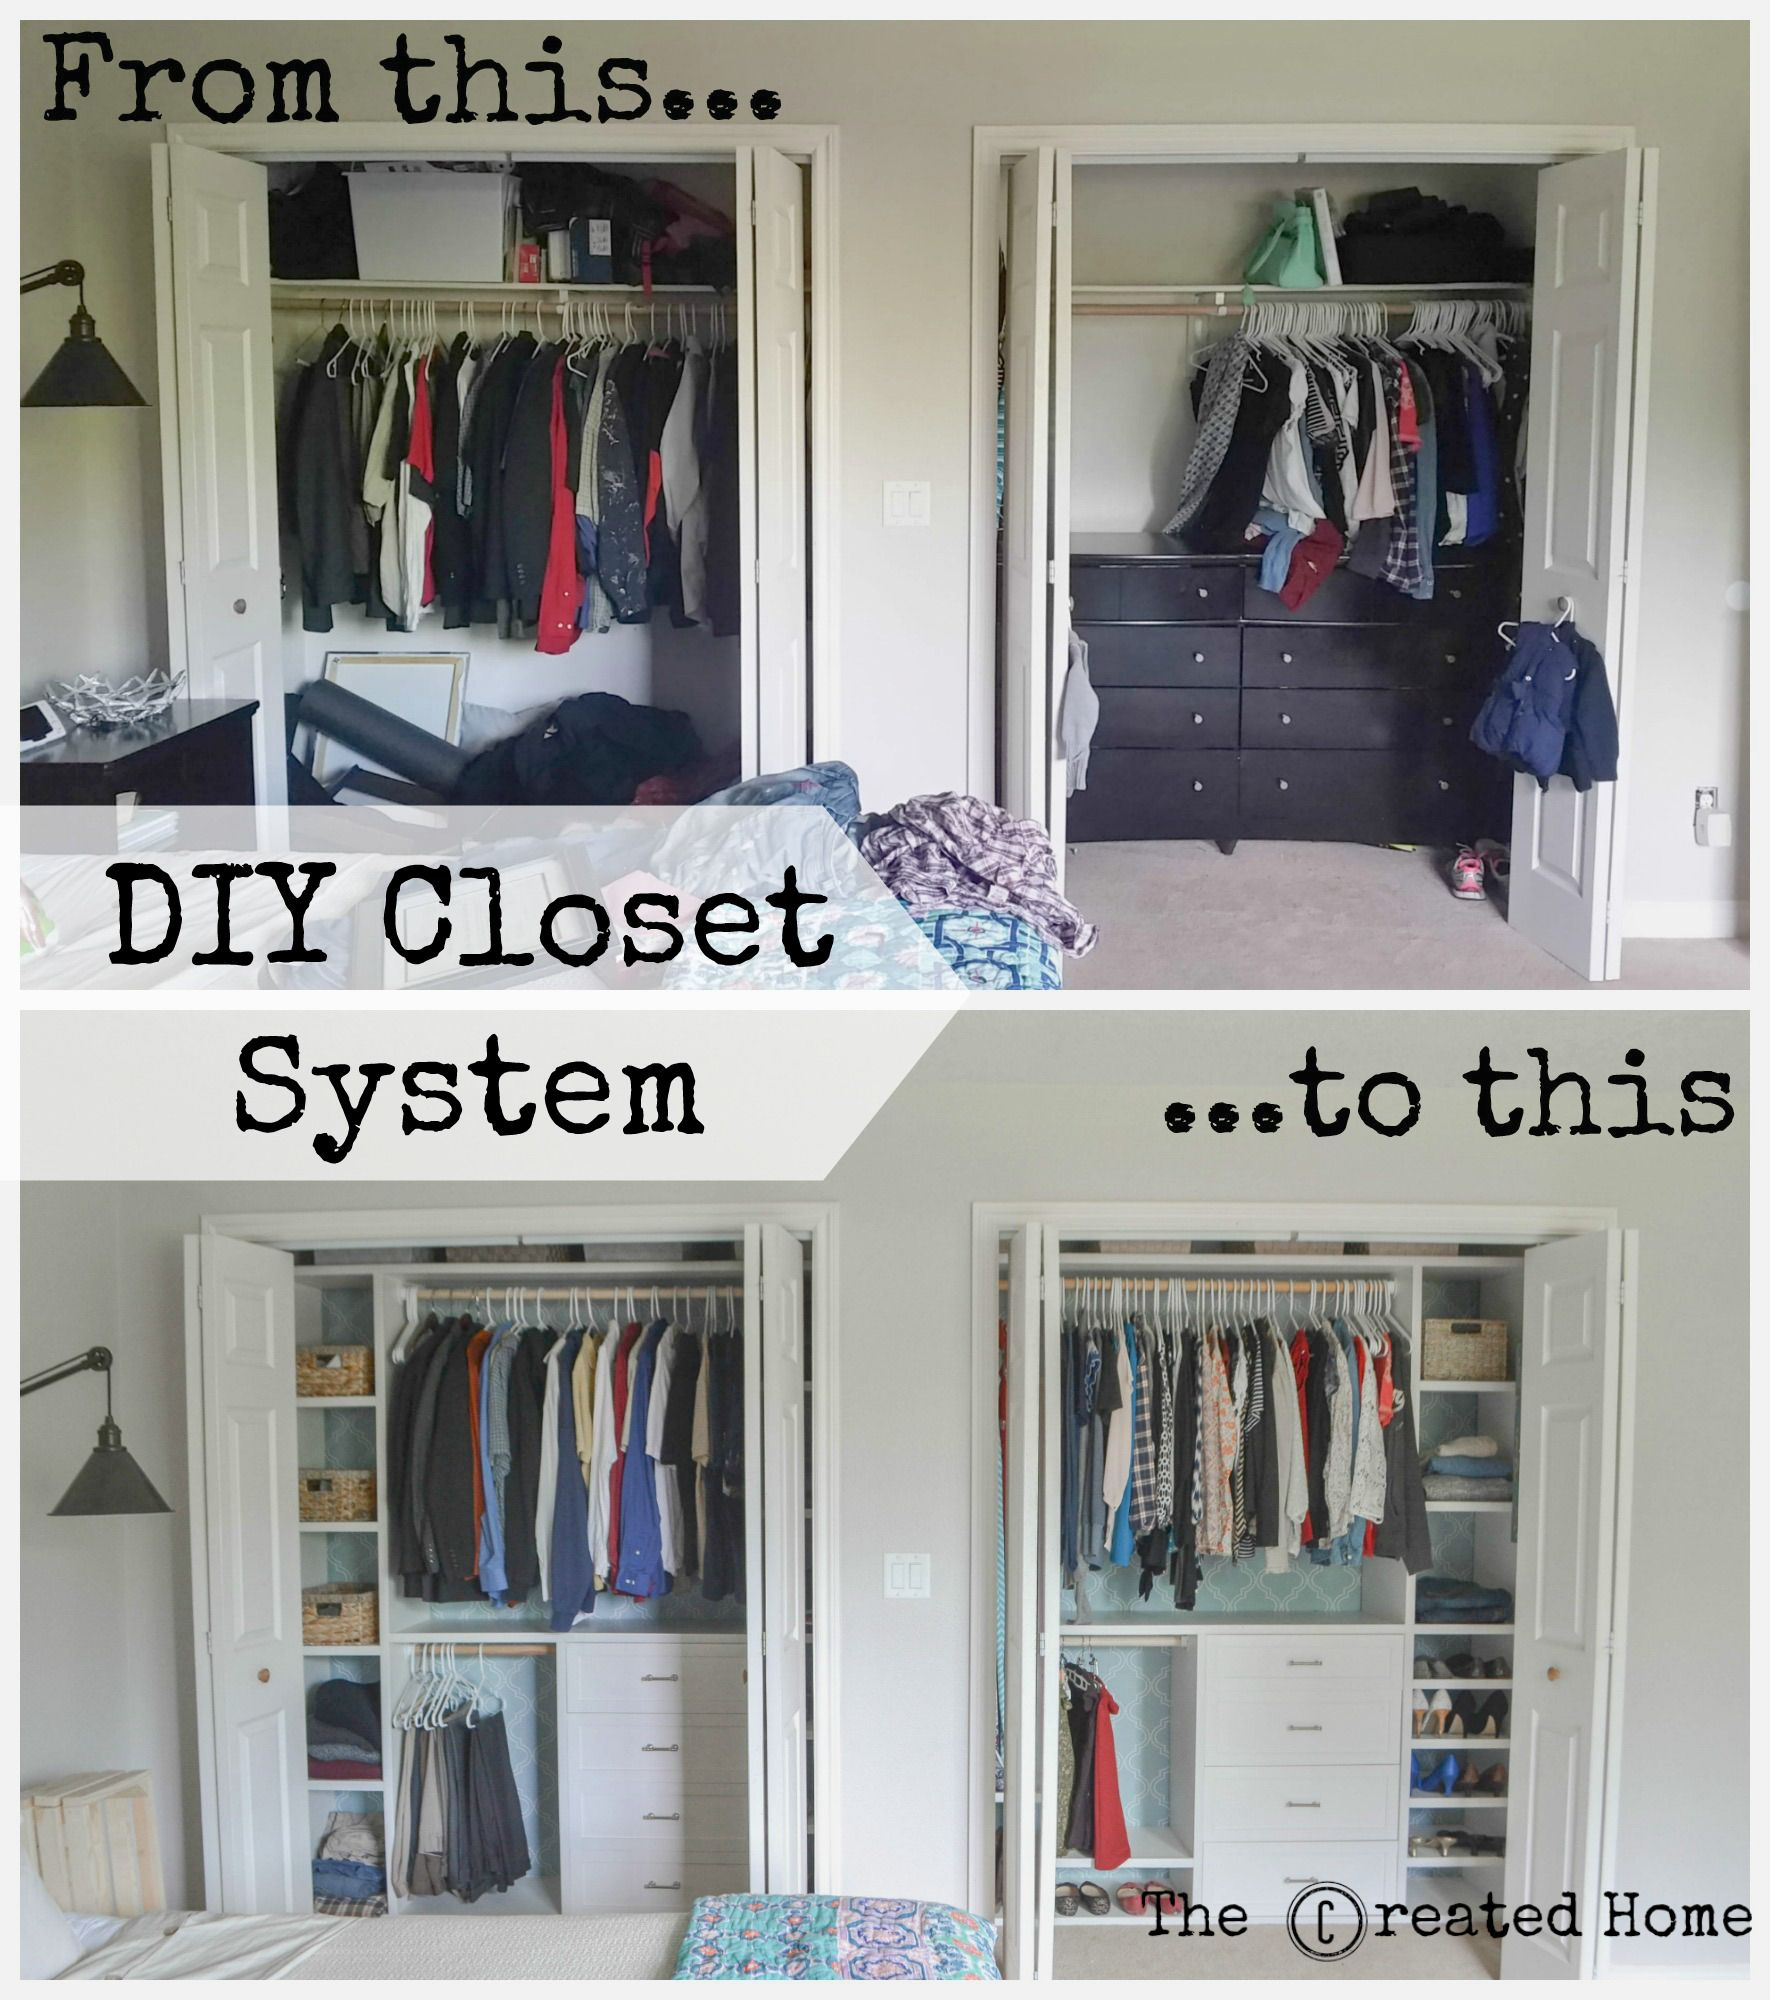 How To Build A Quality Diy Closet System For Any Size